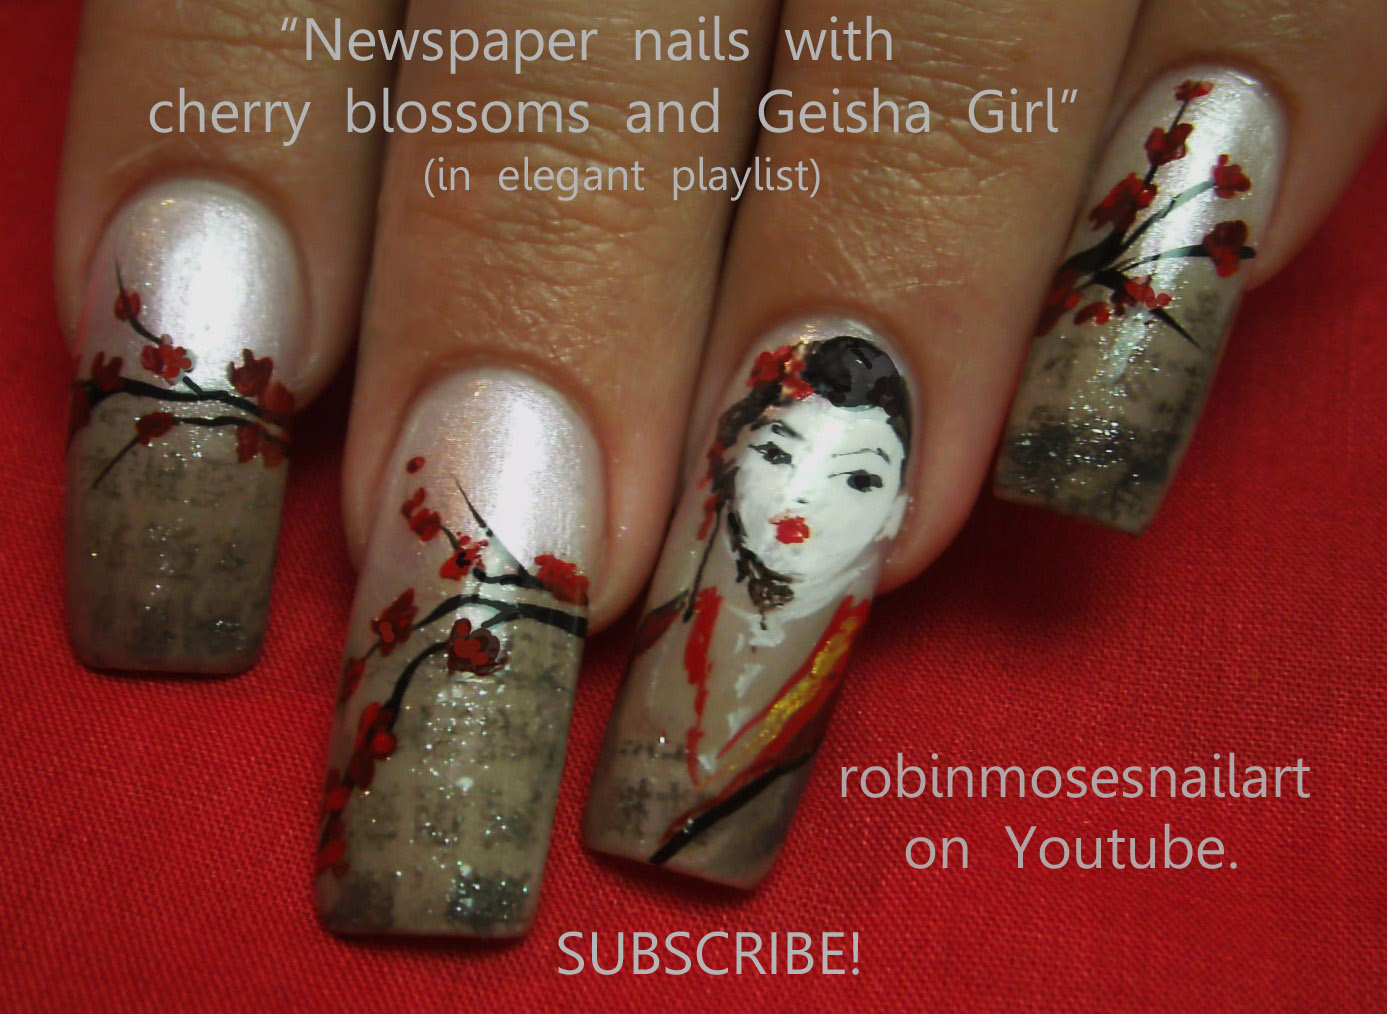 Geisha nail art cherry blossom nails newspaper nail art